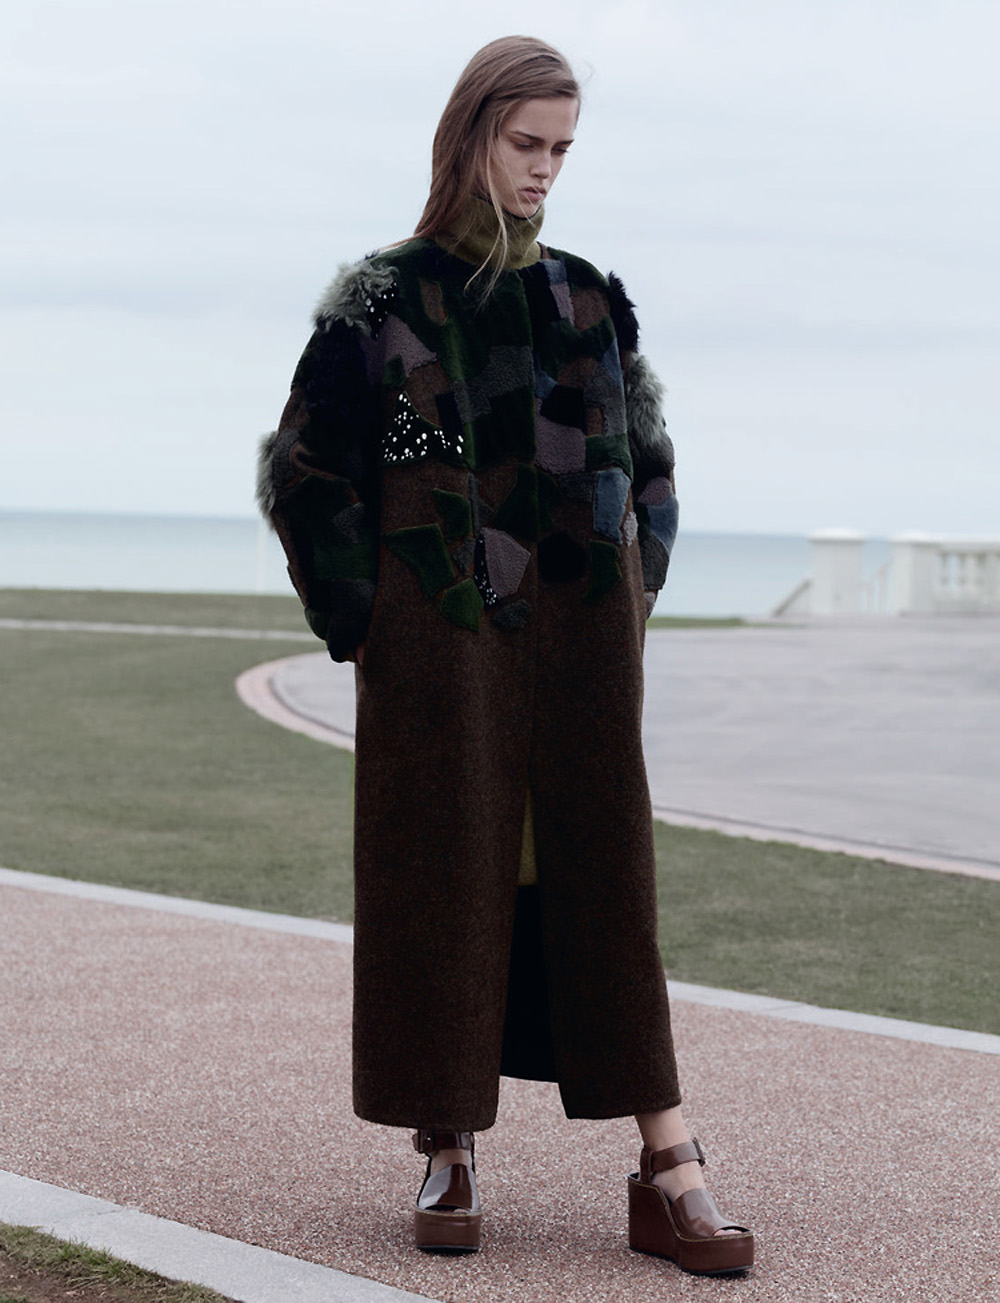 Joanna, Schlenzka , Luxury , Telegraph, Fashion, Editorial, Magazine, Oracle, Fox